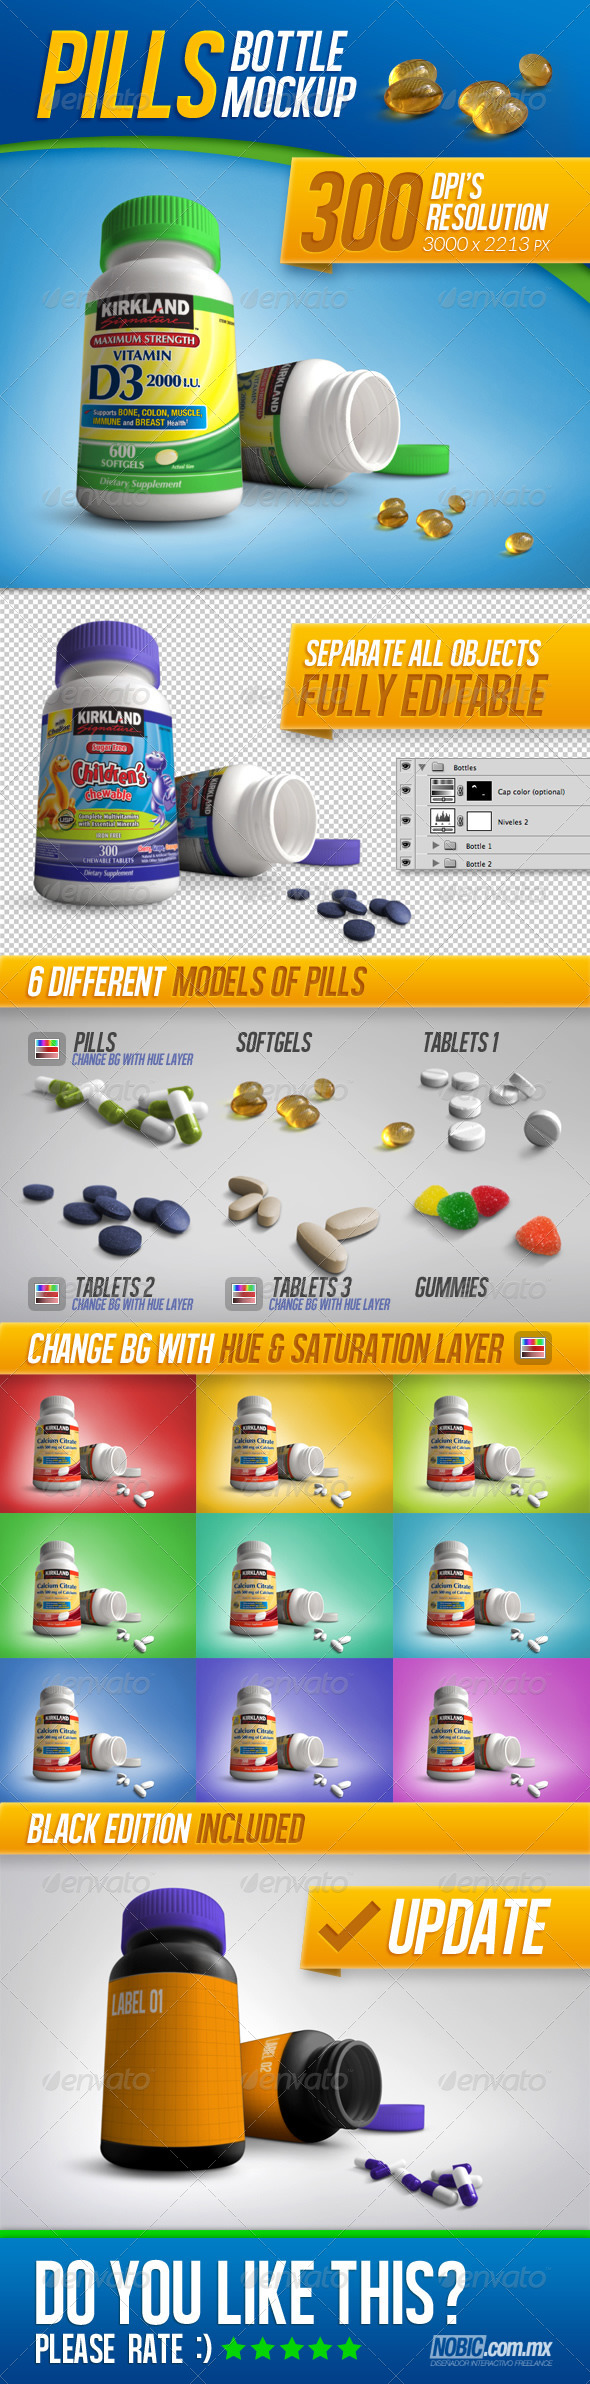 Tablets, Vitamins and Pills Bottle Mockup - Miscellaneous Packaging